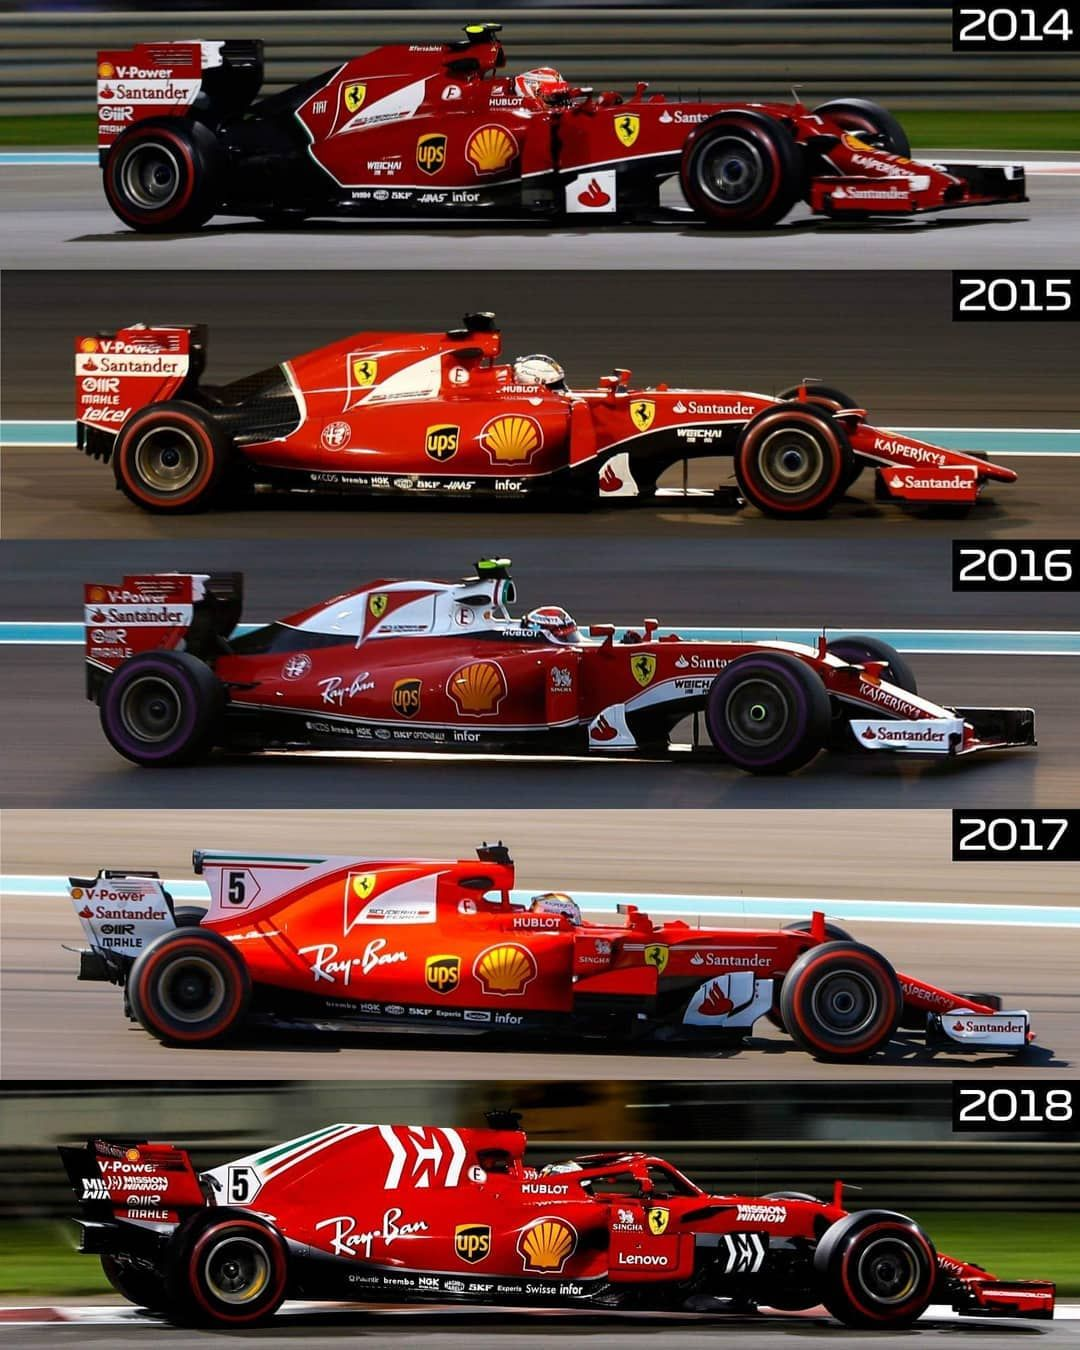 Formula 1 On Instagram On Friday Ferrari Became The First Team To Announce The Launch Date For Their 2019 Challenger Got Formula 1 Ferrari Formula 1 Car